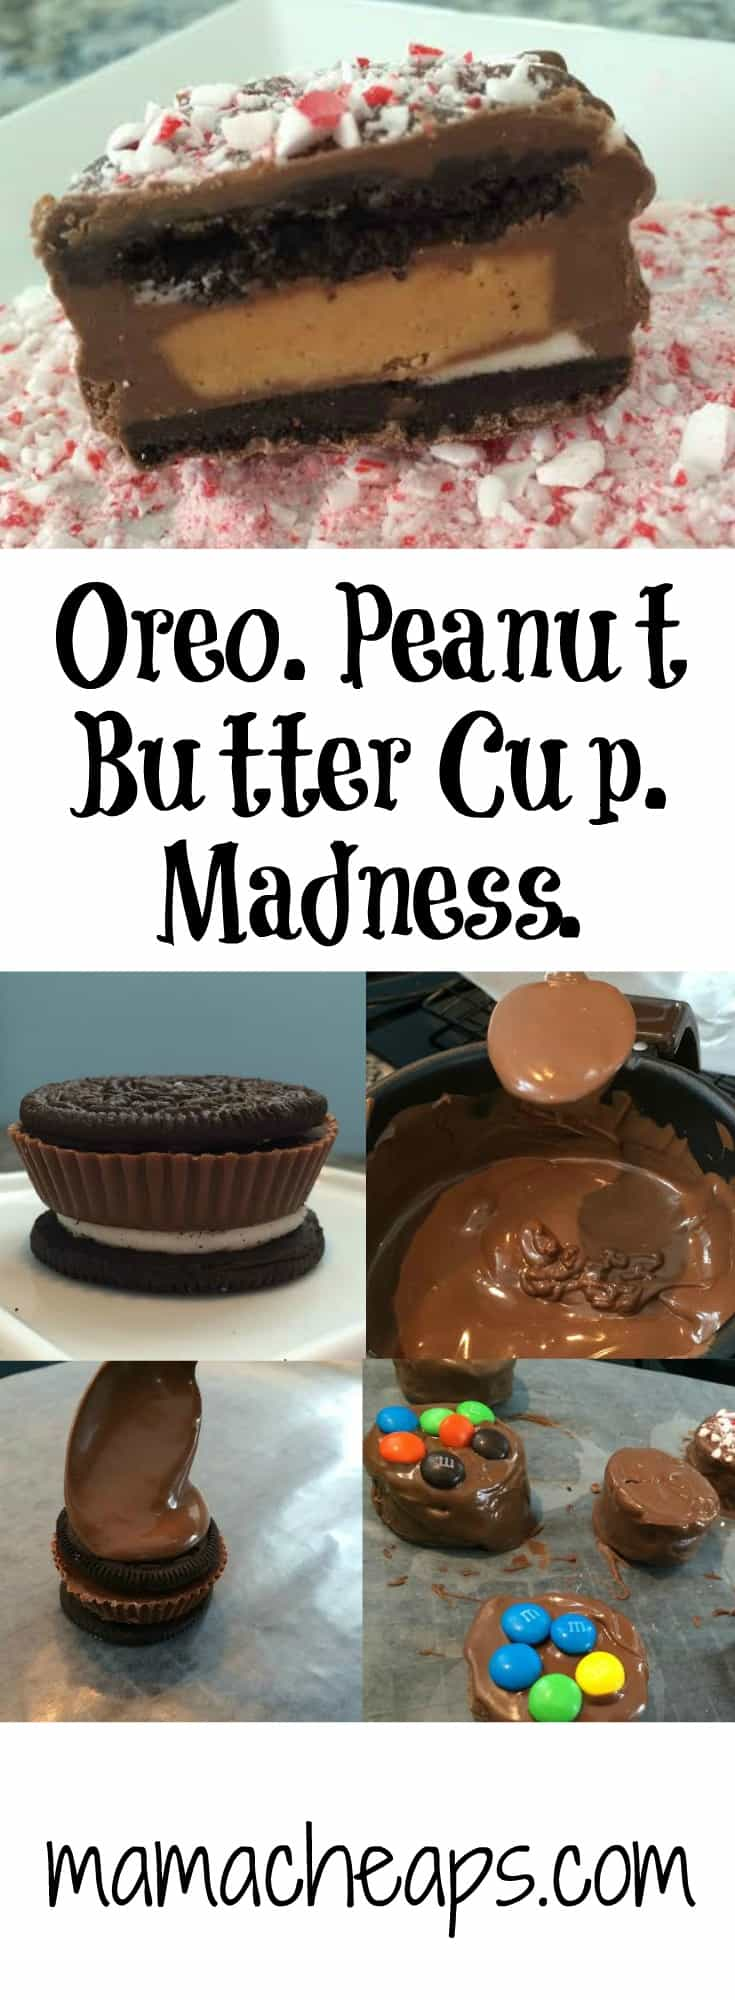 Oreo Peanut Butter Cup Madness